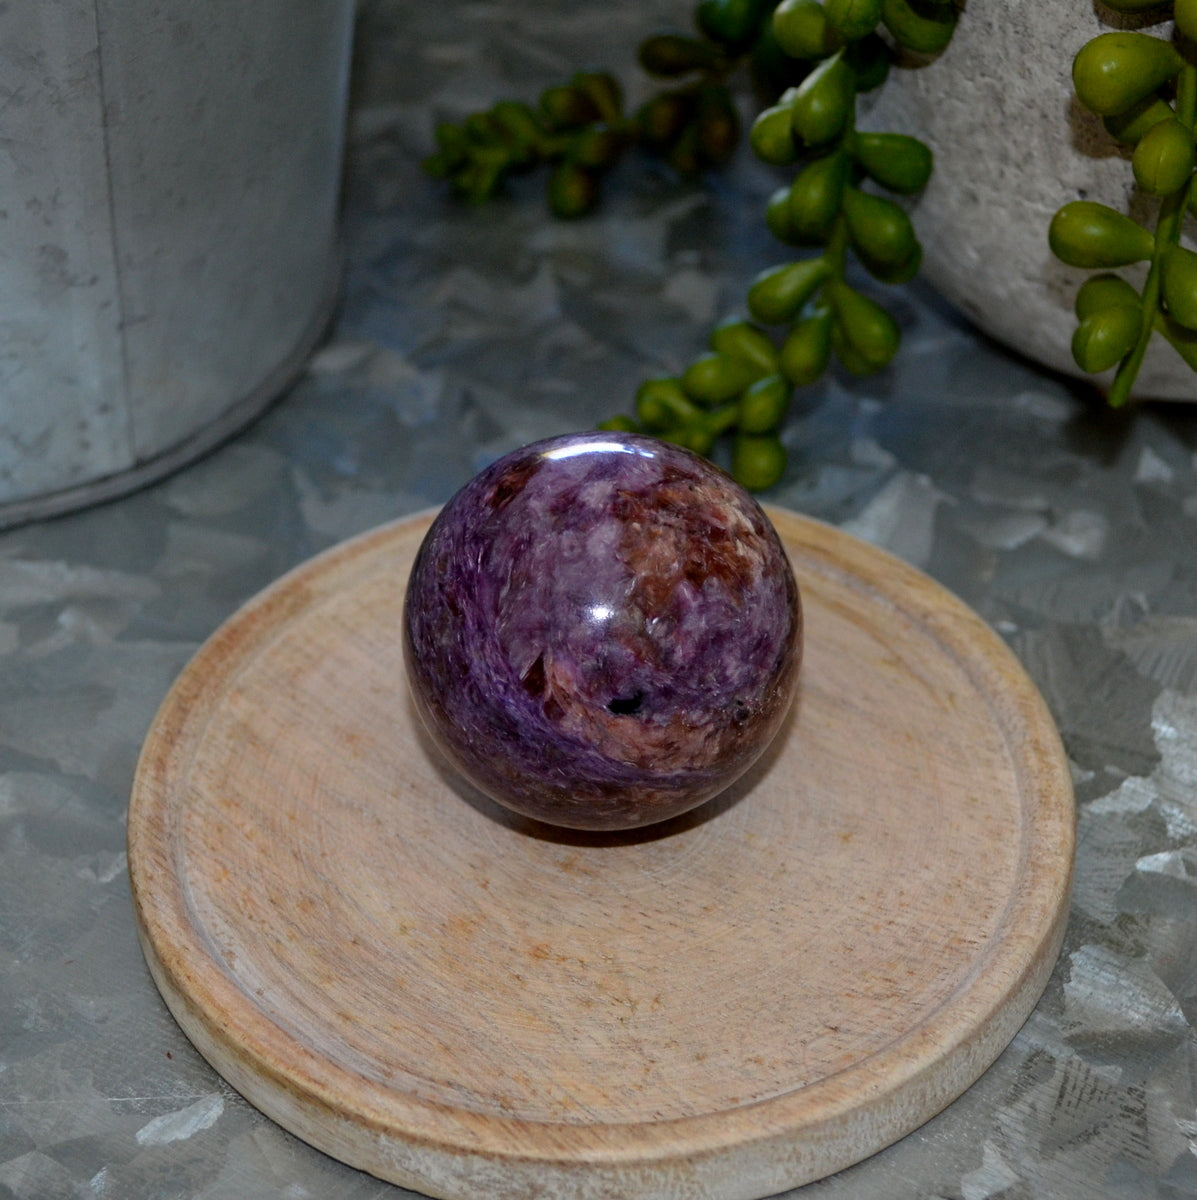 Stunning Charoite Sphere Russia - Shop Now at Illiom Crystals - Afterpay Available